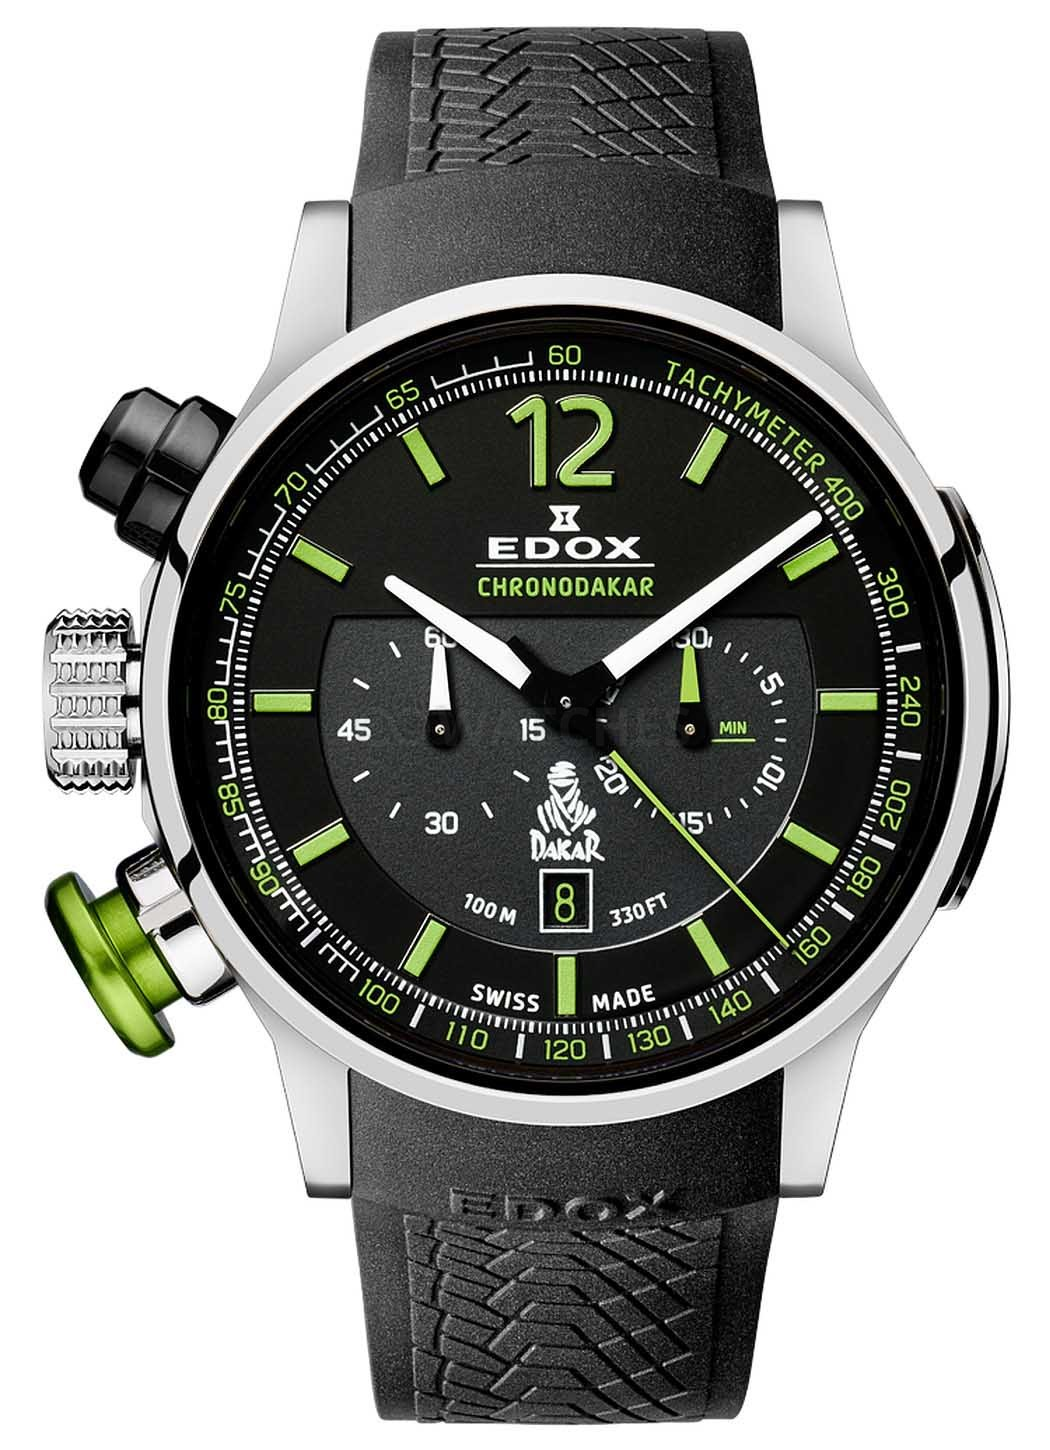 Edox Chronorally Chronodakar Limited Edition 2015 10303 TIN NV watch